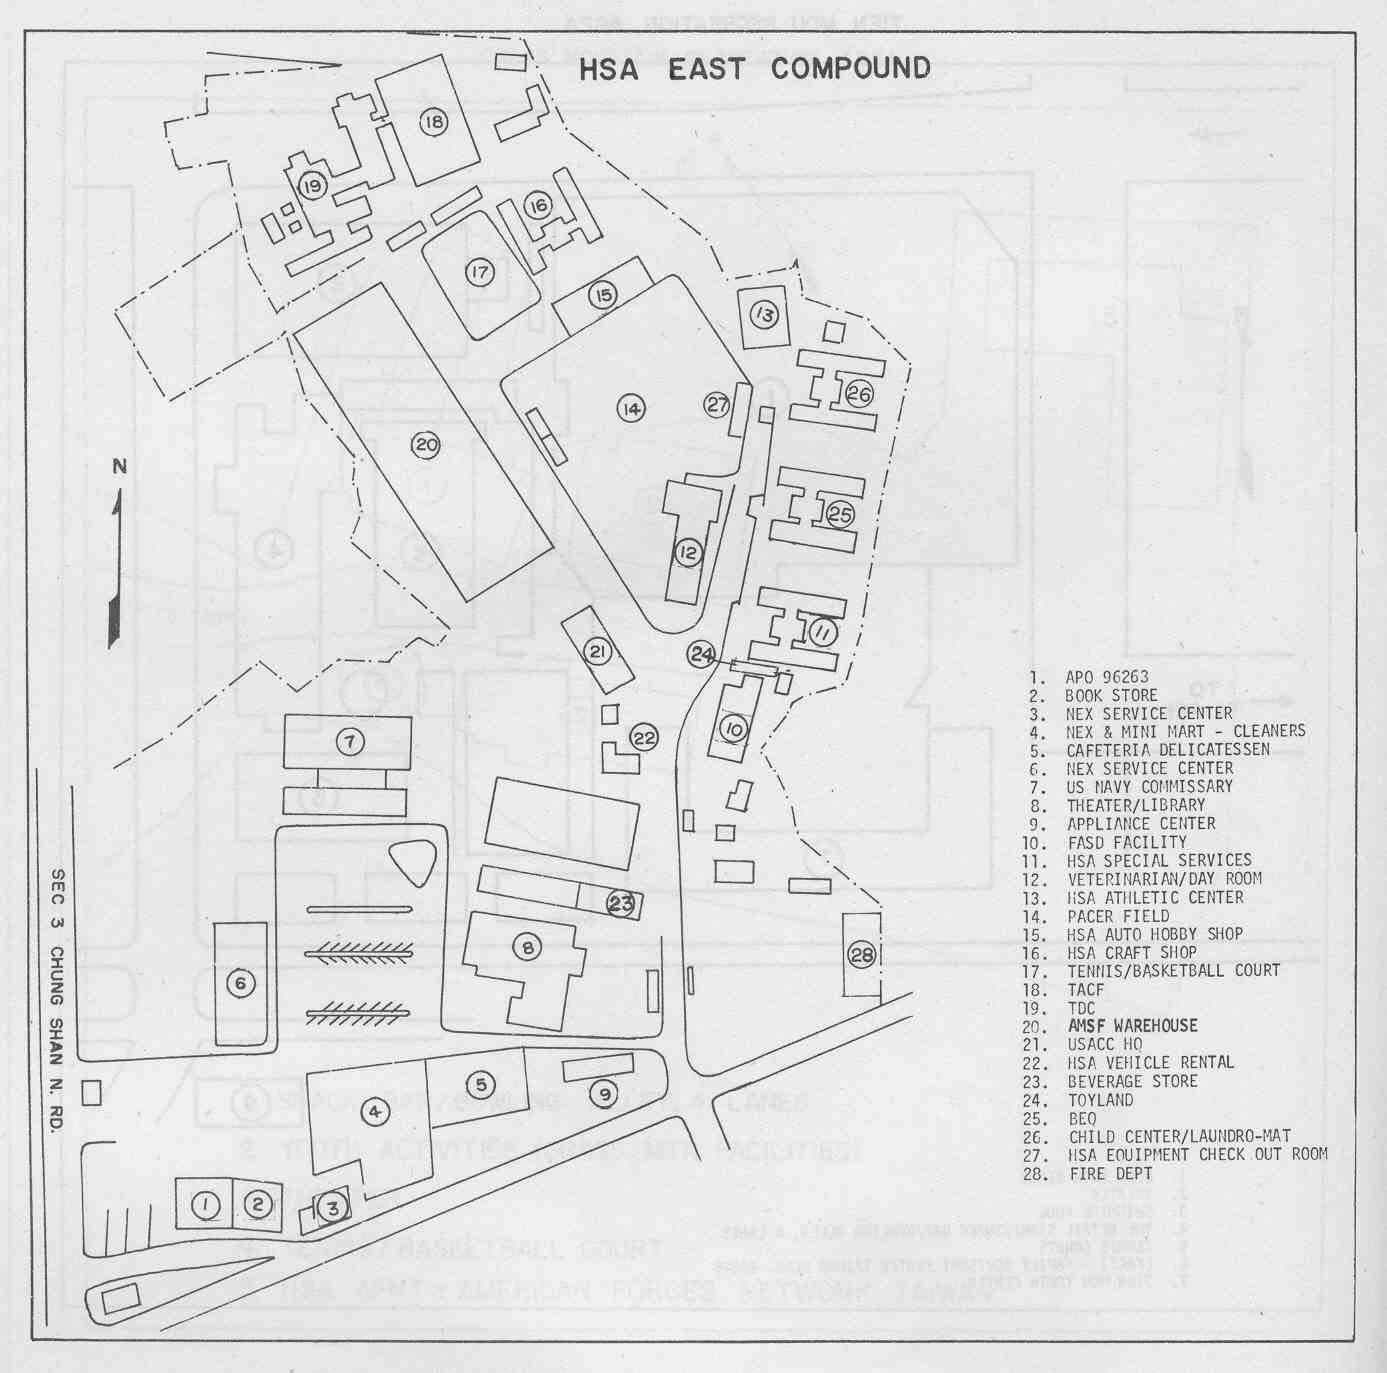 [HSA_East_Compound1977.jpg]